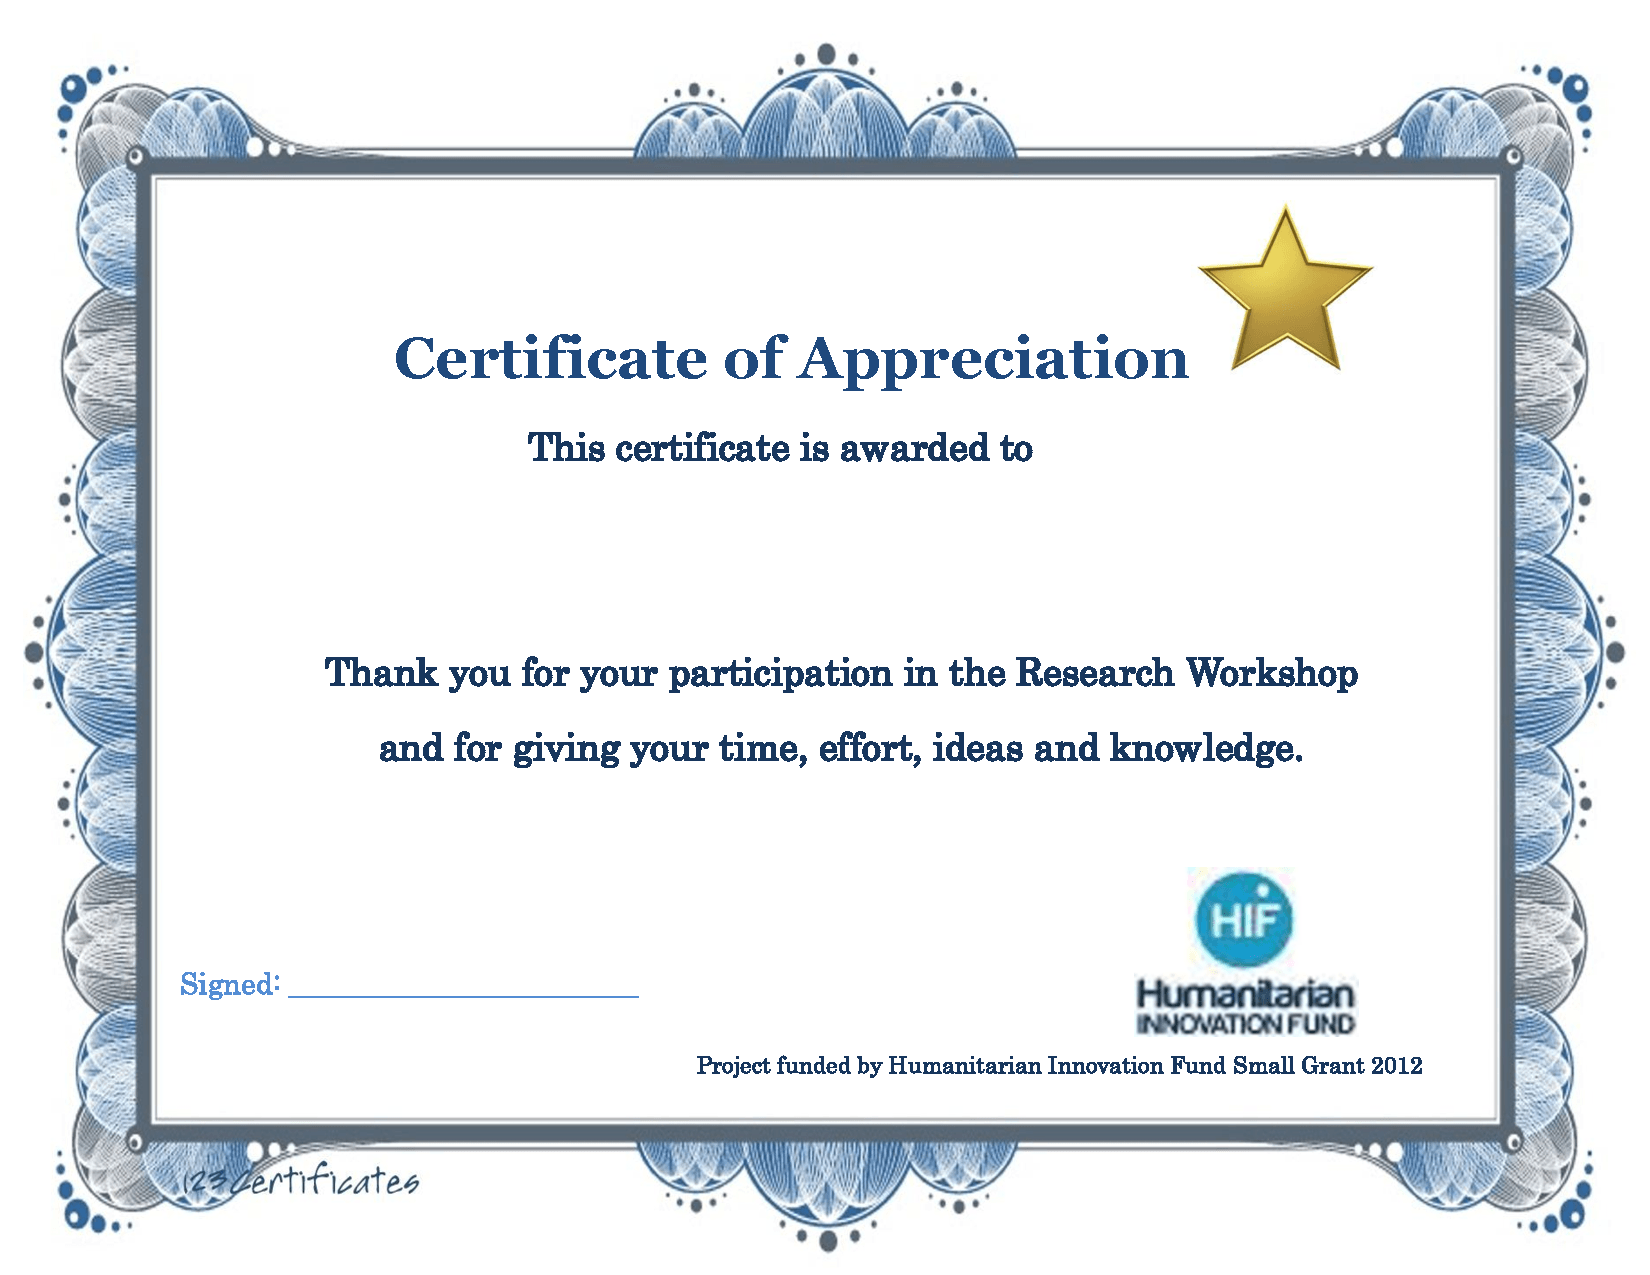 Appreciation training certificate completion thank you word letter appreciation training certificate completion thank you word letter free sample letters good yelopaper Images